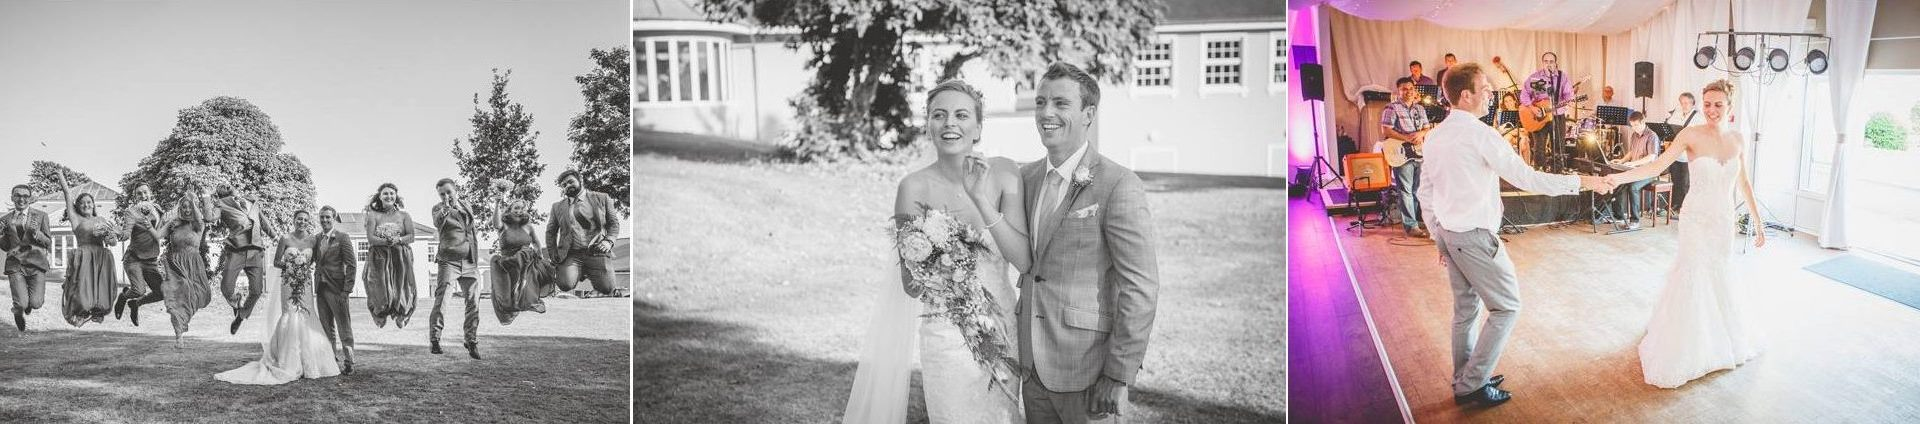 Grace & Dan - Wedding Photography Preview - The Elfordleigh Hotel